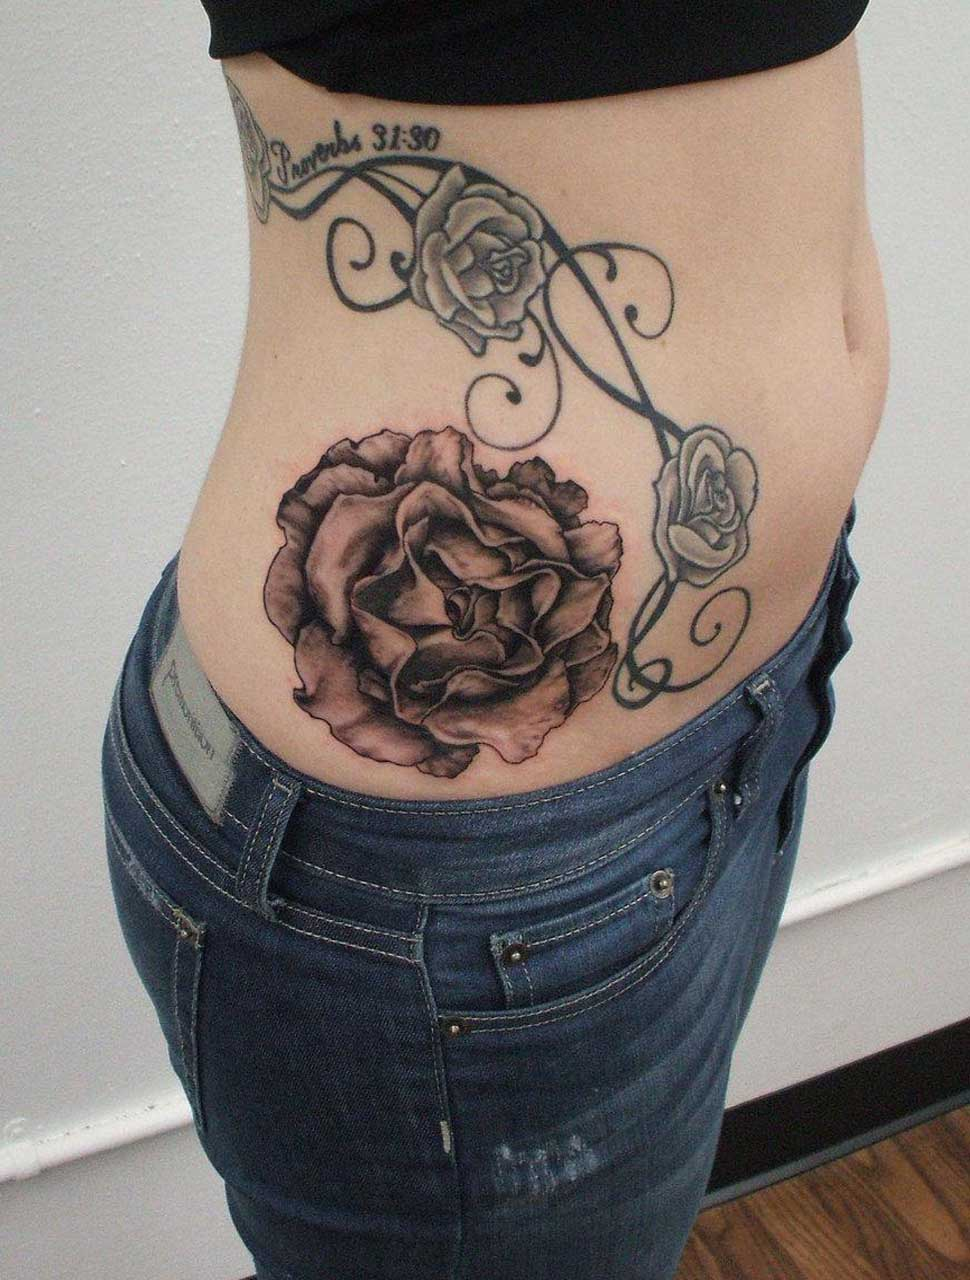 Latest Tattoos Designs Rose Tattoo Designs For Girls Ideas And Designs